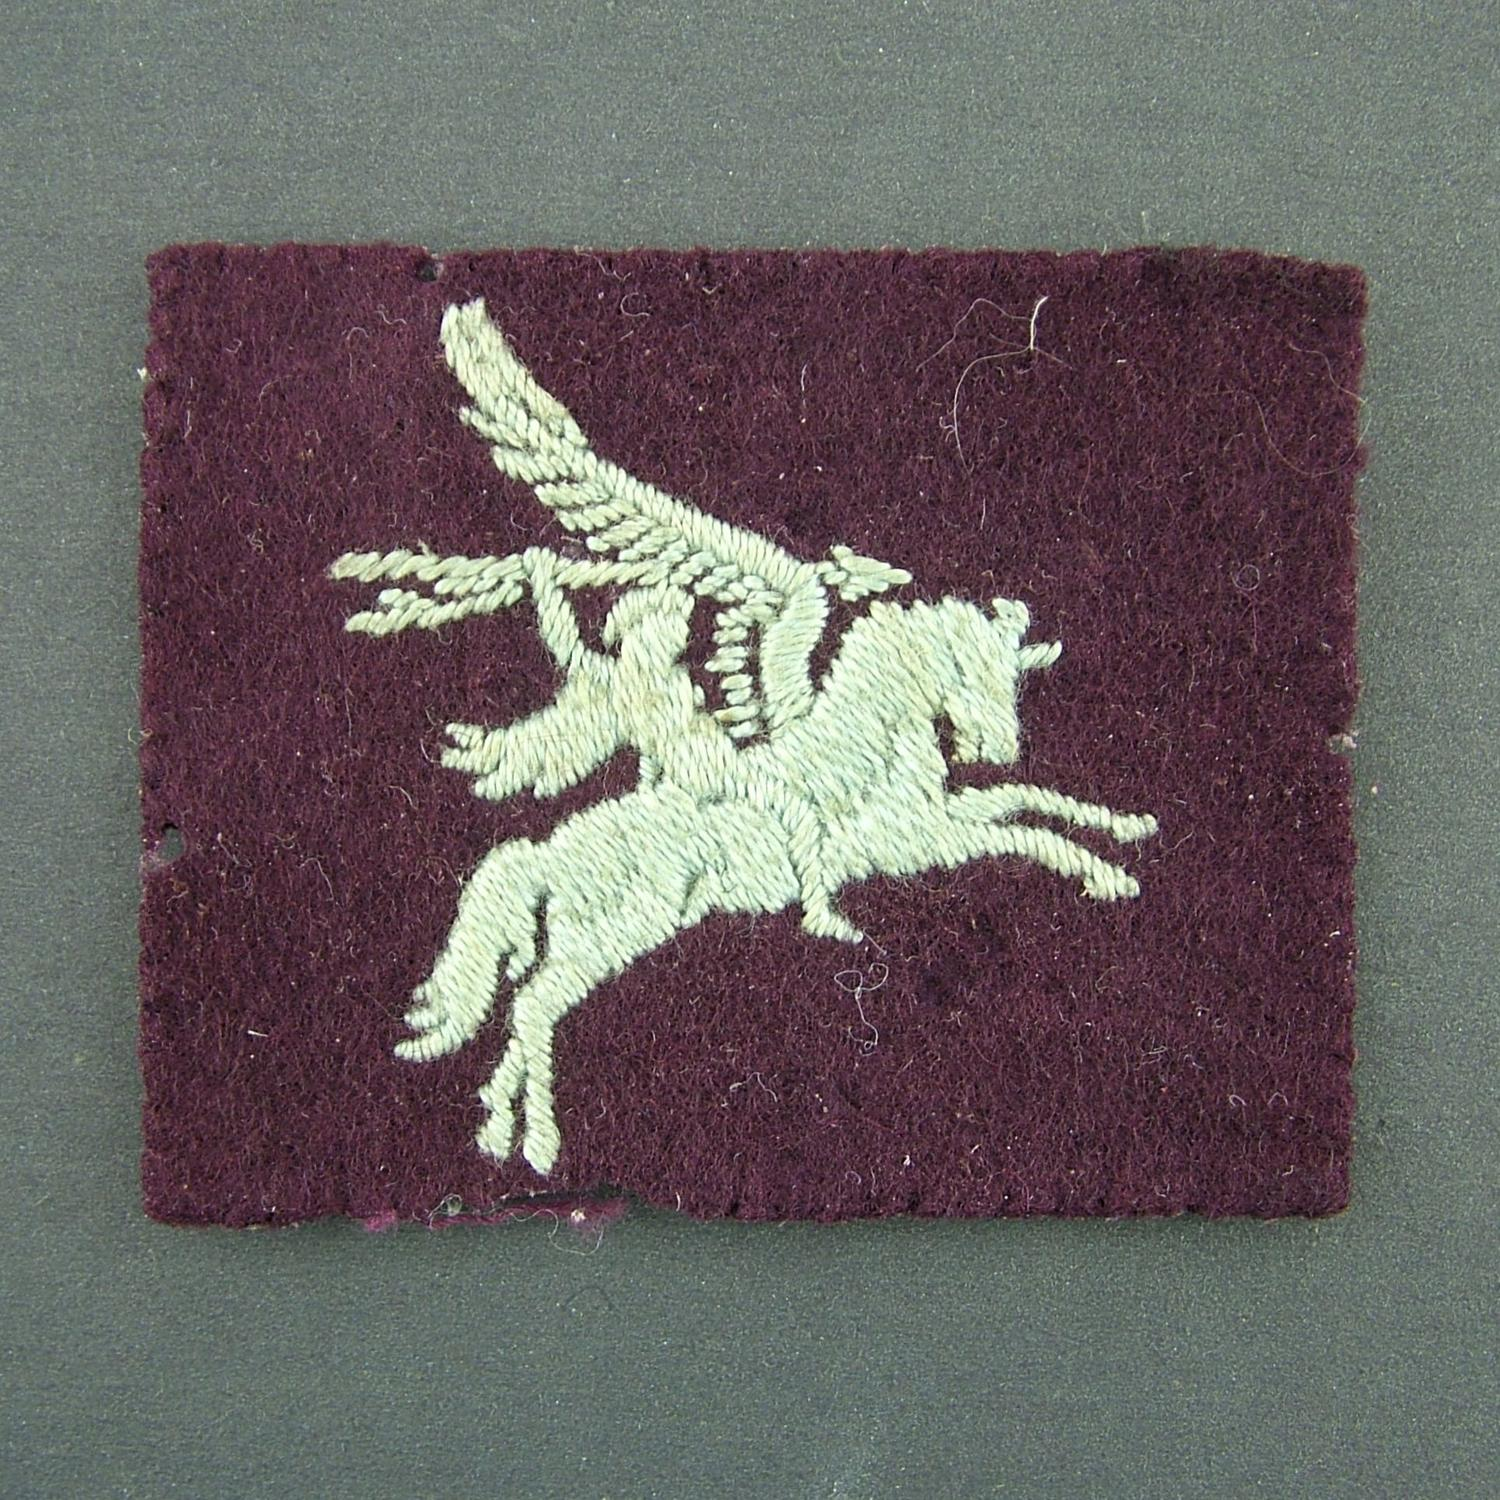 British Army Airborne 'Pegasus' patch